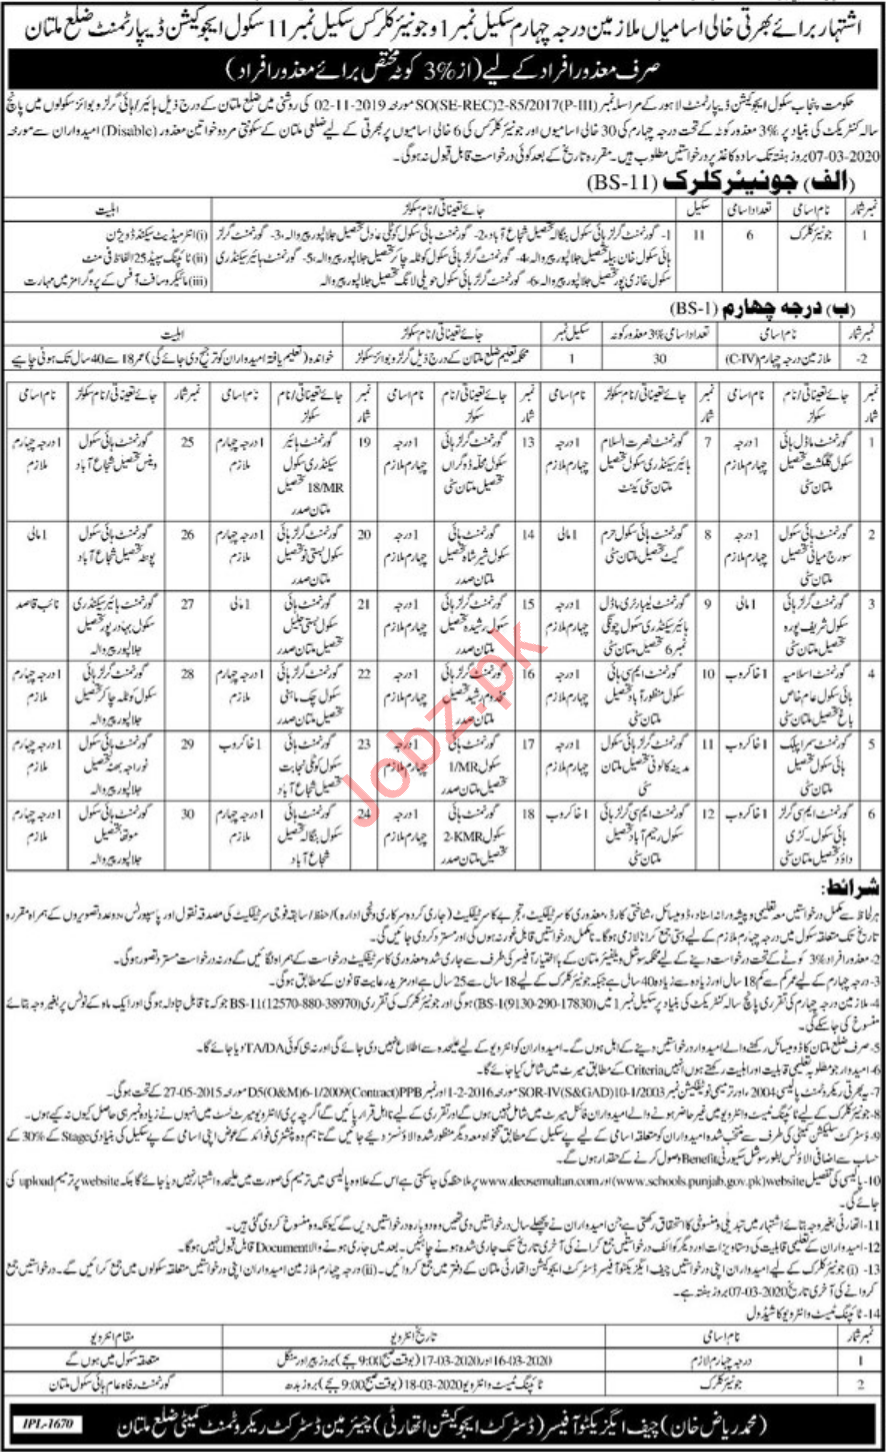 School Education Department Jobs For Disabled Persons